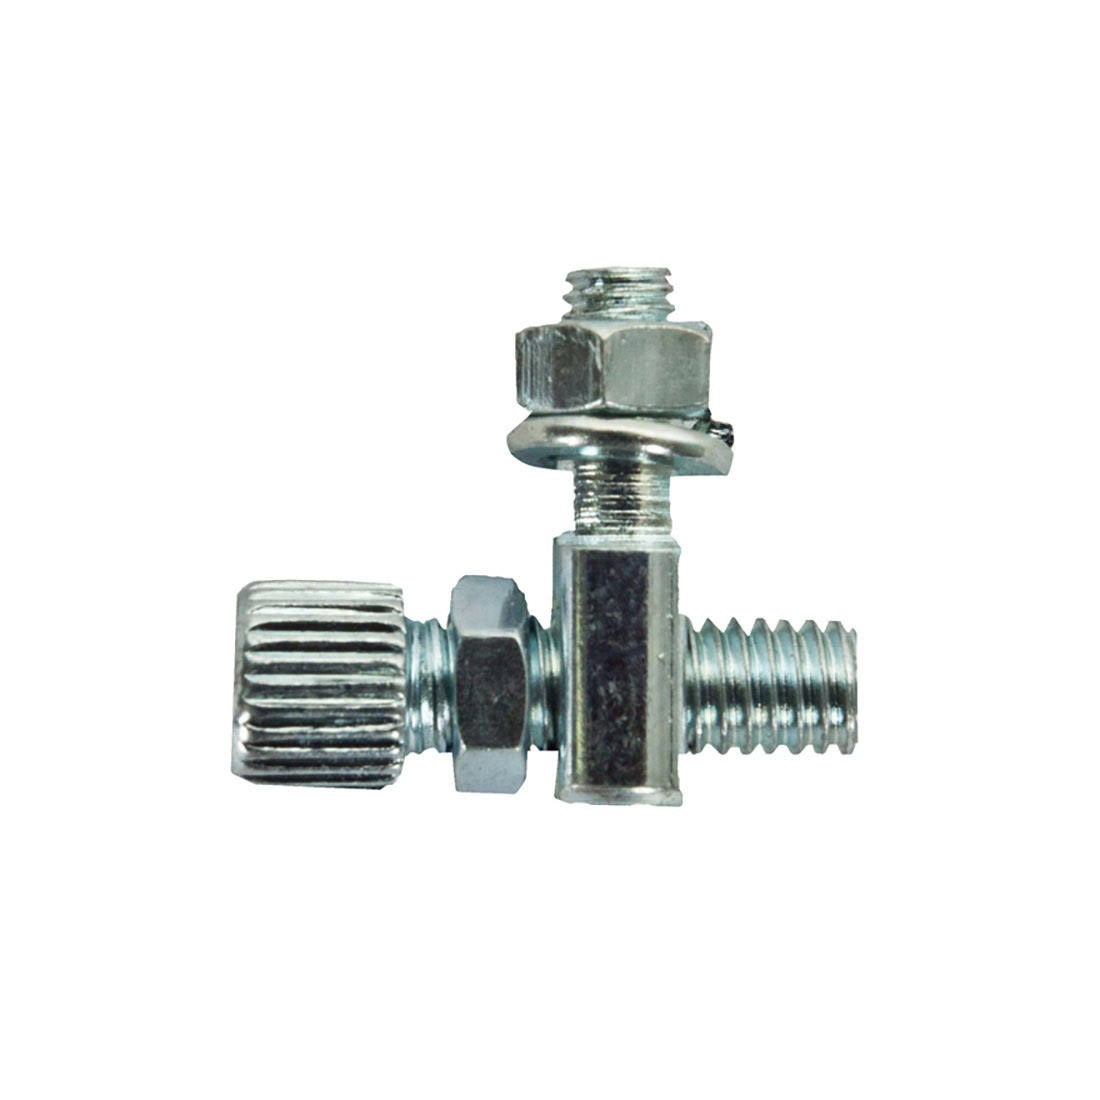 Sunlite Brake Barrel Adjuster Bolt